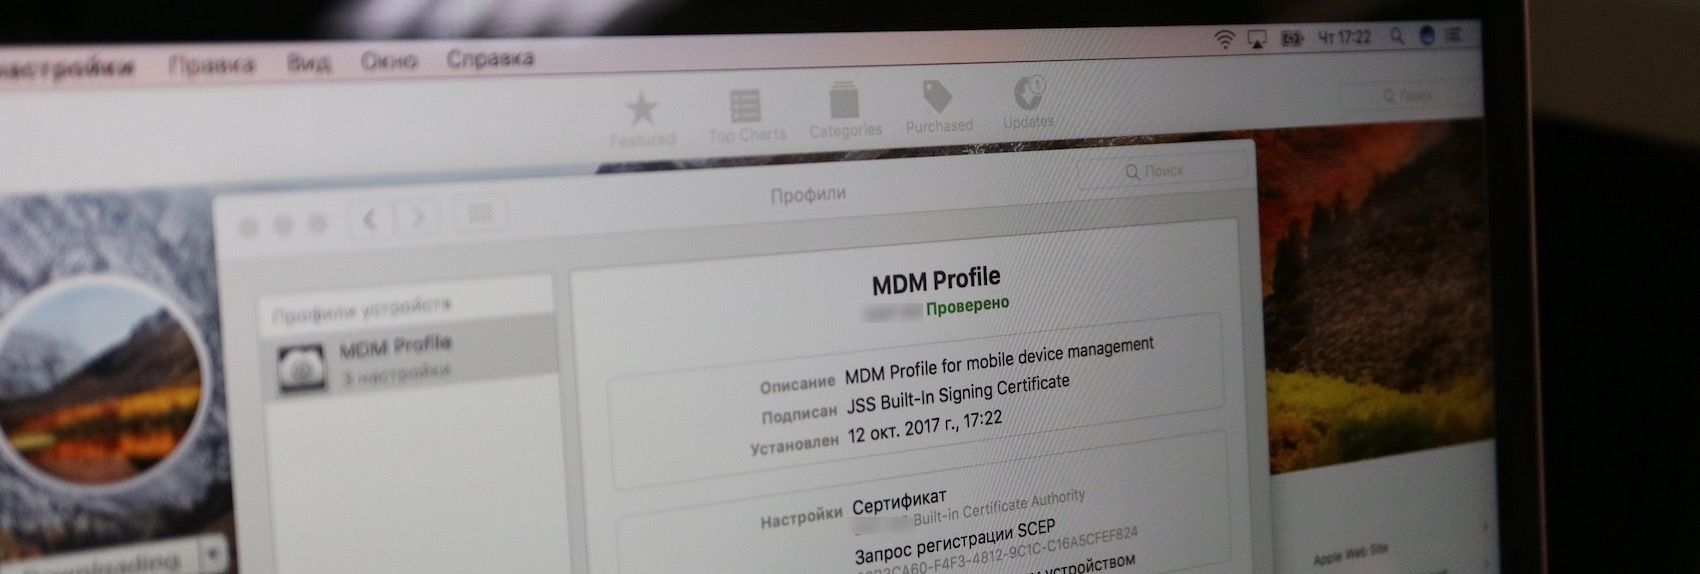 Mobile Device Management Protocol - MDM профиль на apple macbook retina